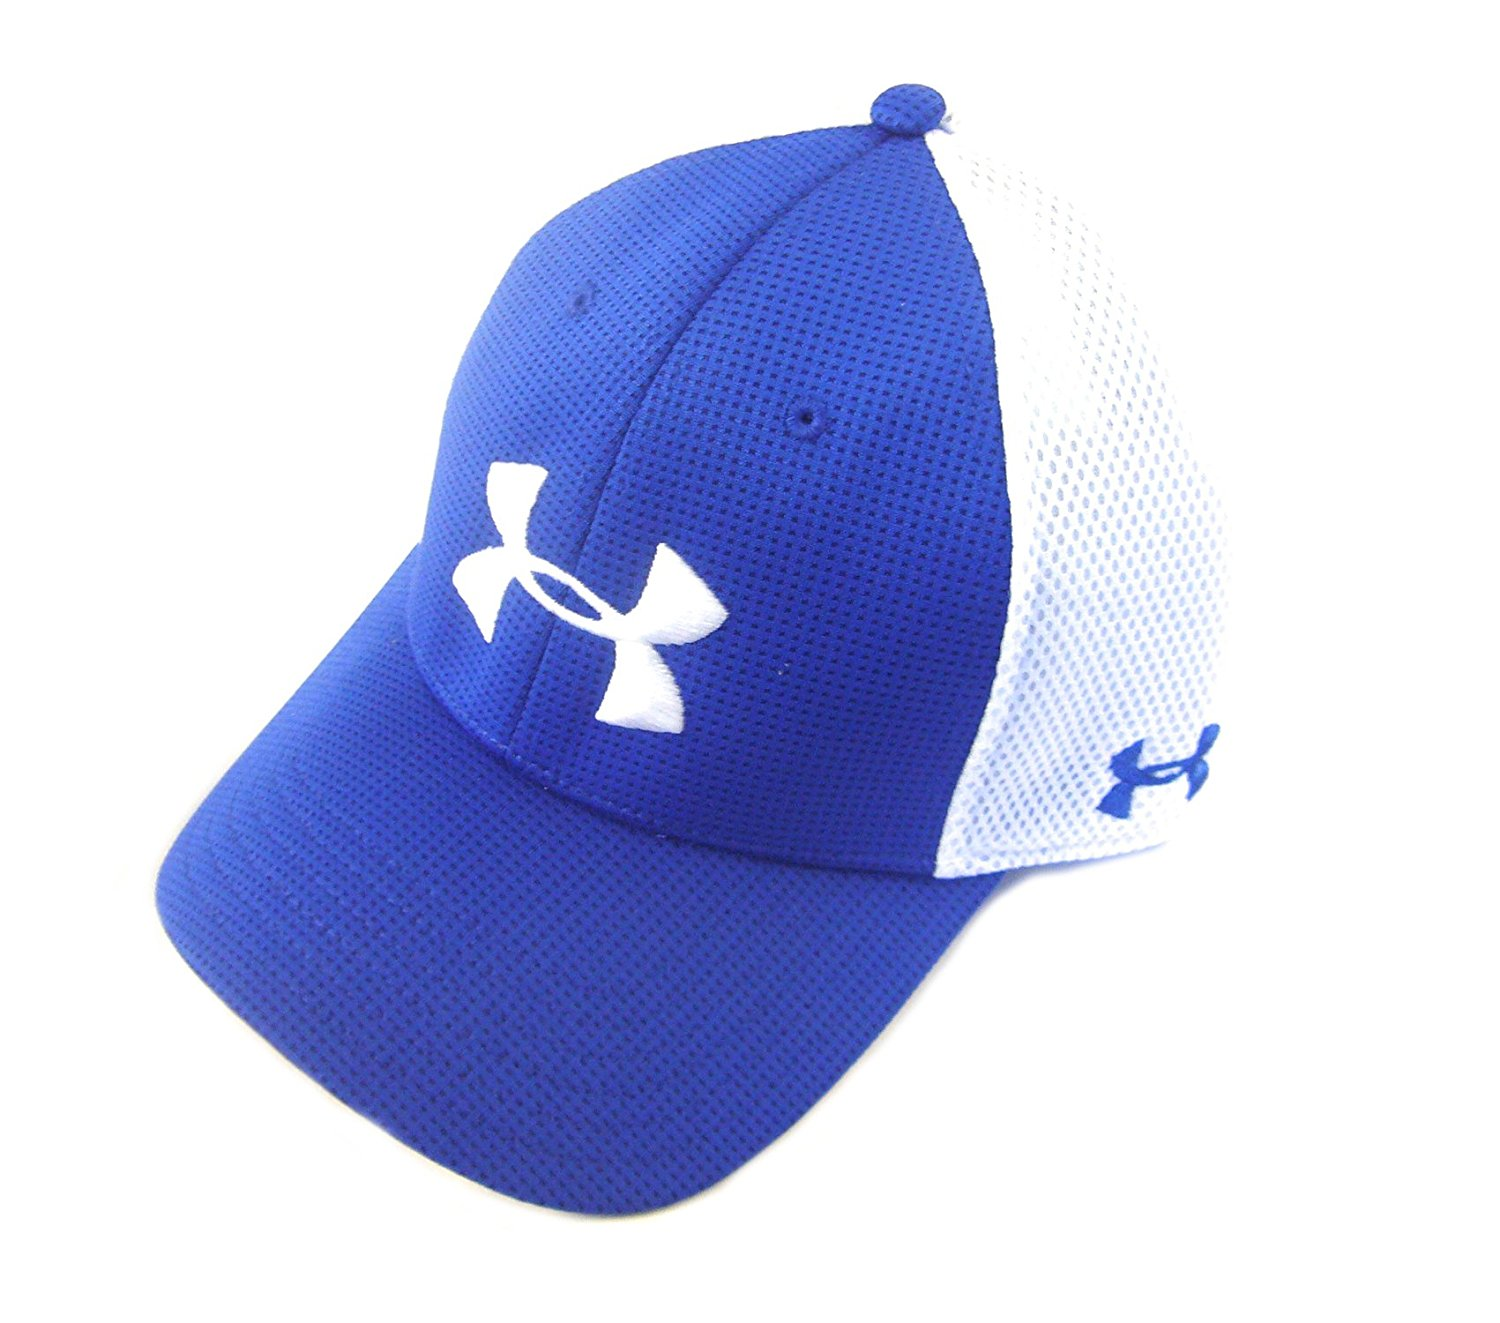 royal blue under armour hat